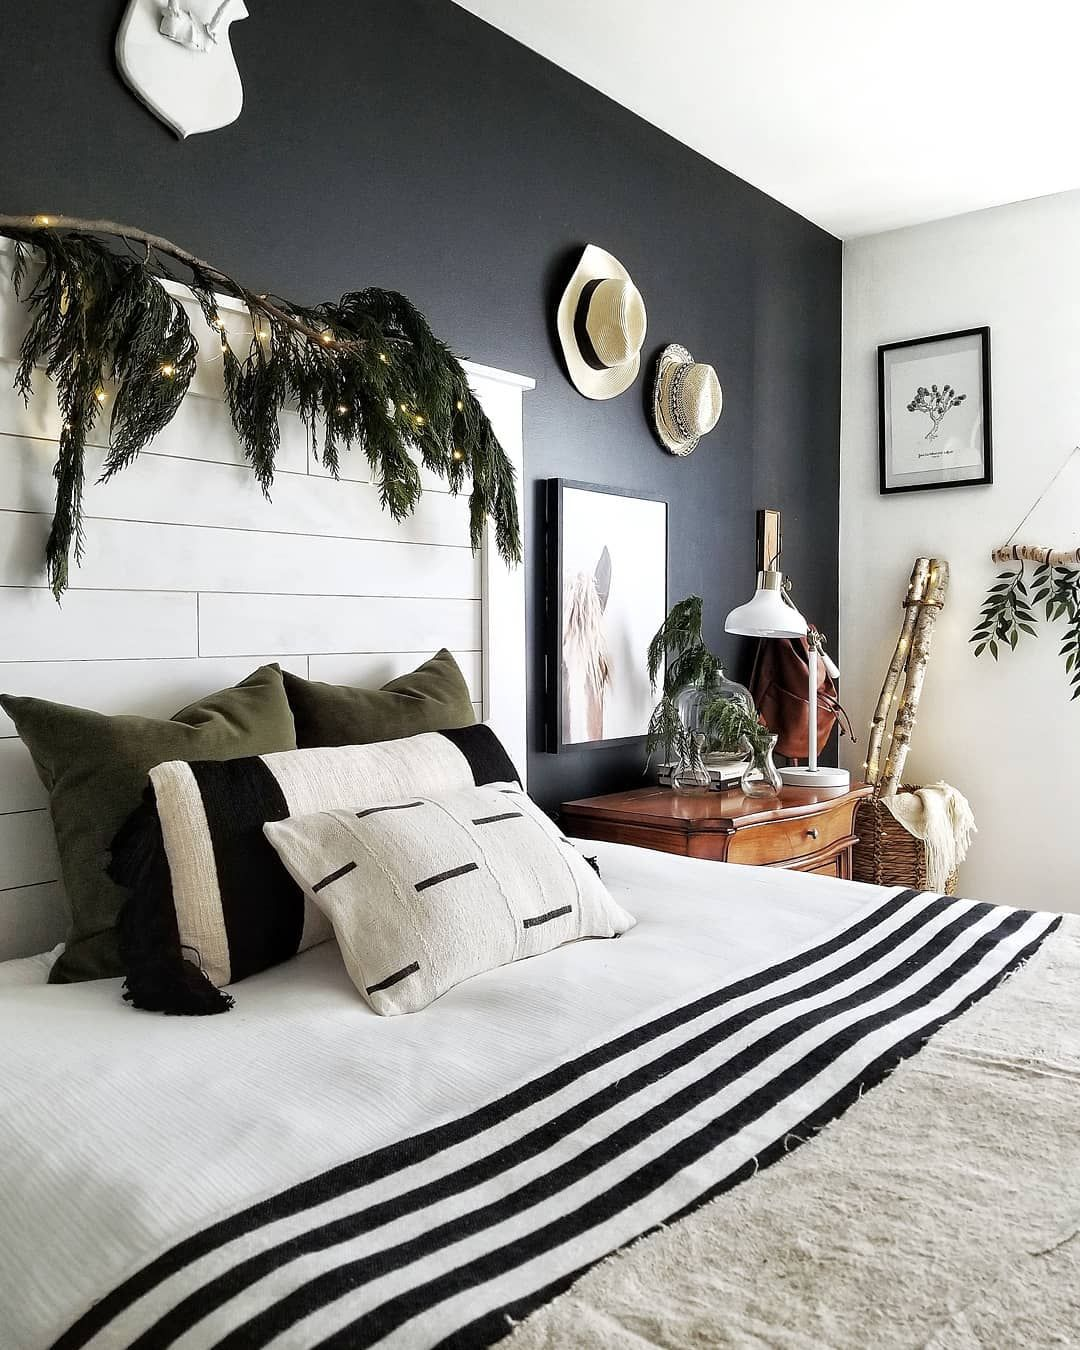 Painting my bedroom wall black was one of the best design risks I